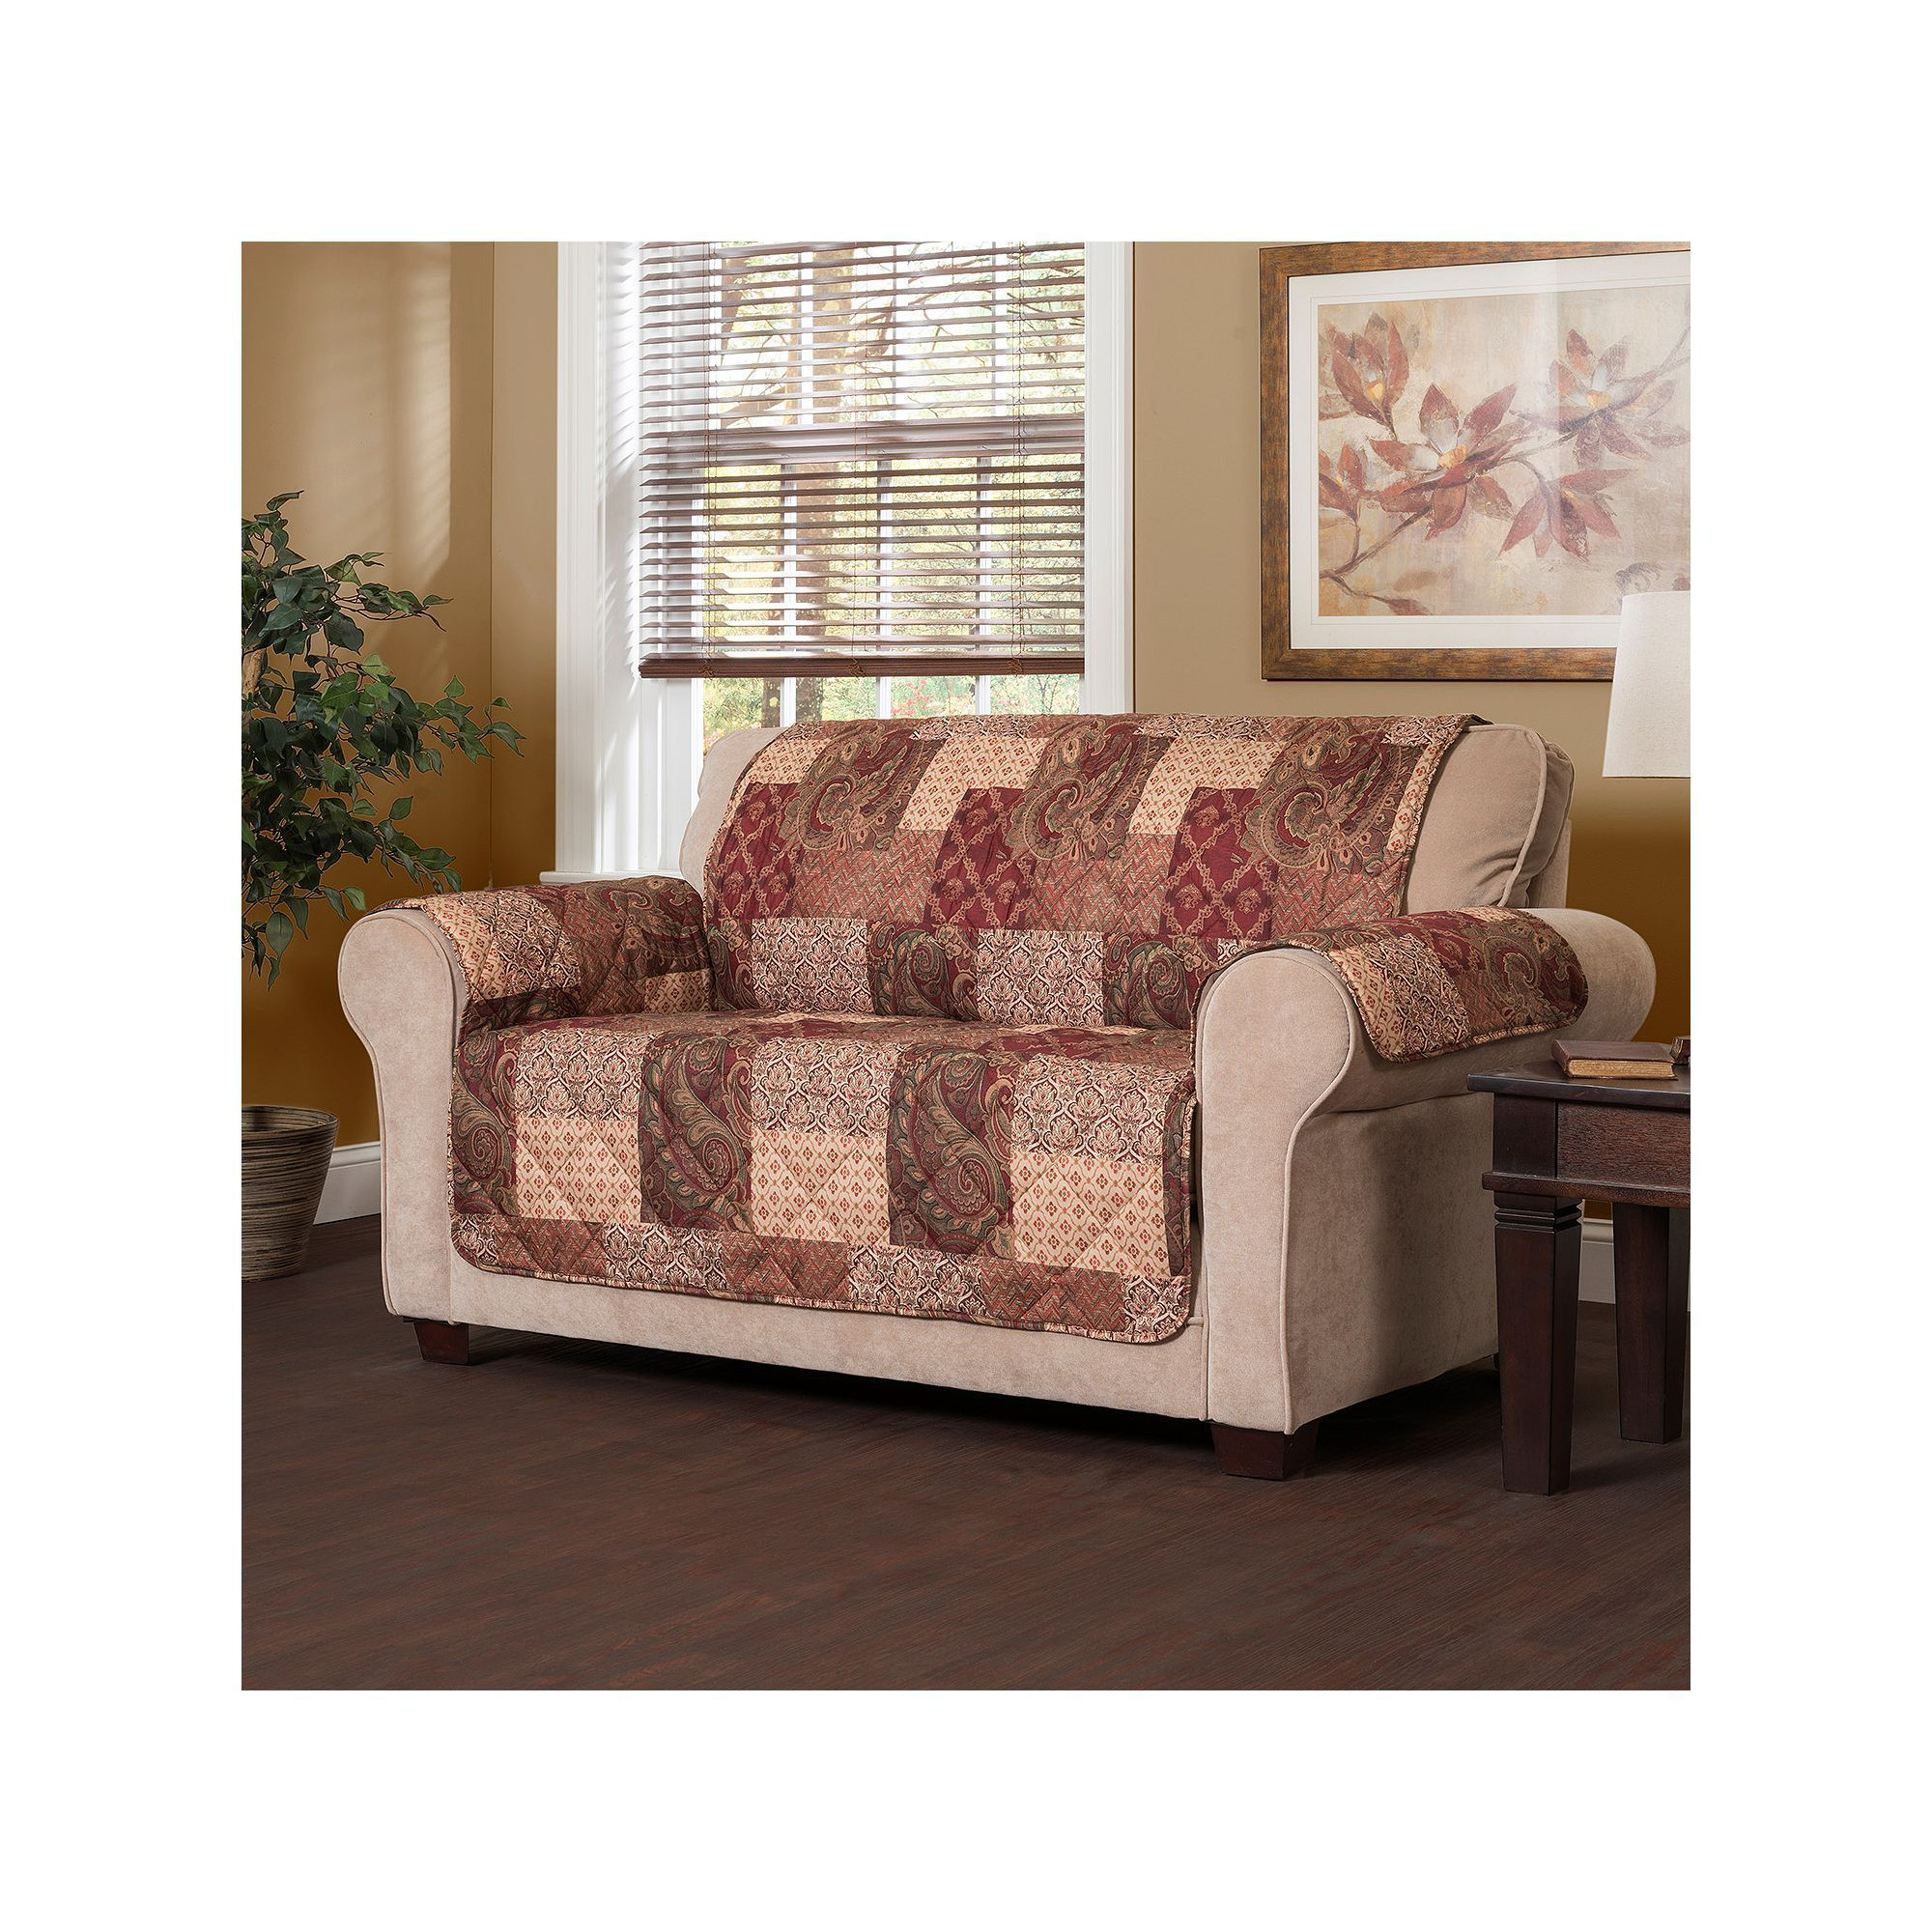 pearson fit product today loveseat sure stretch slipcovers free shipping garden overstock home